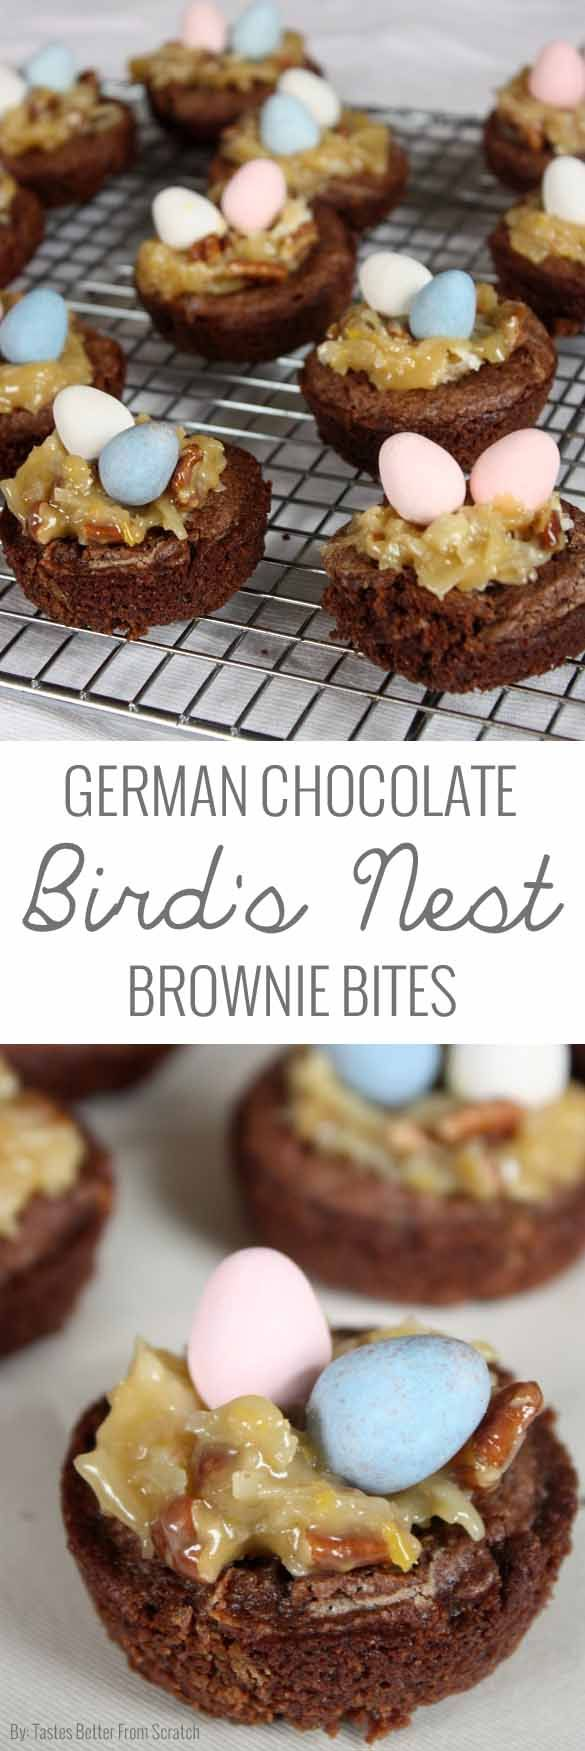 These German chocolate bird's nest brownie bites are beyond delicious! So fun and festive too! Classic dessert.